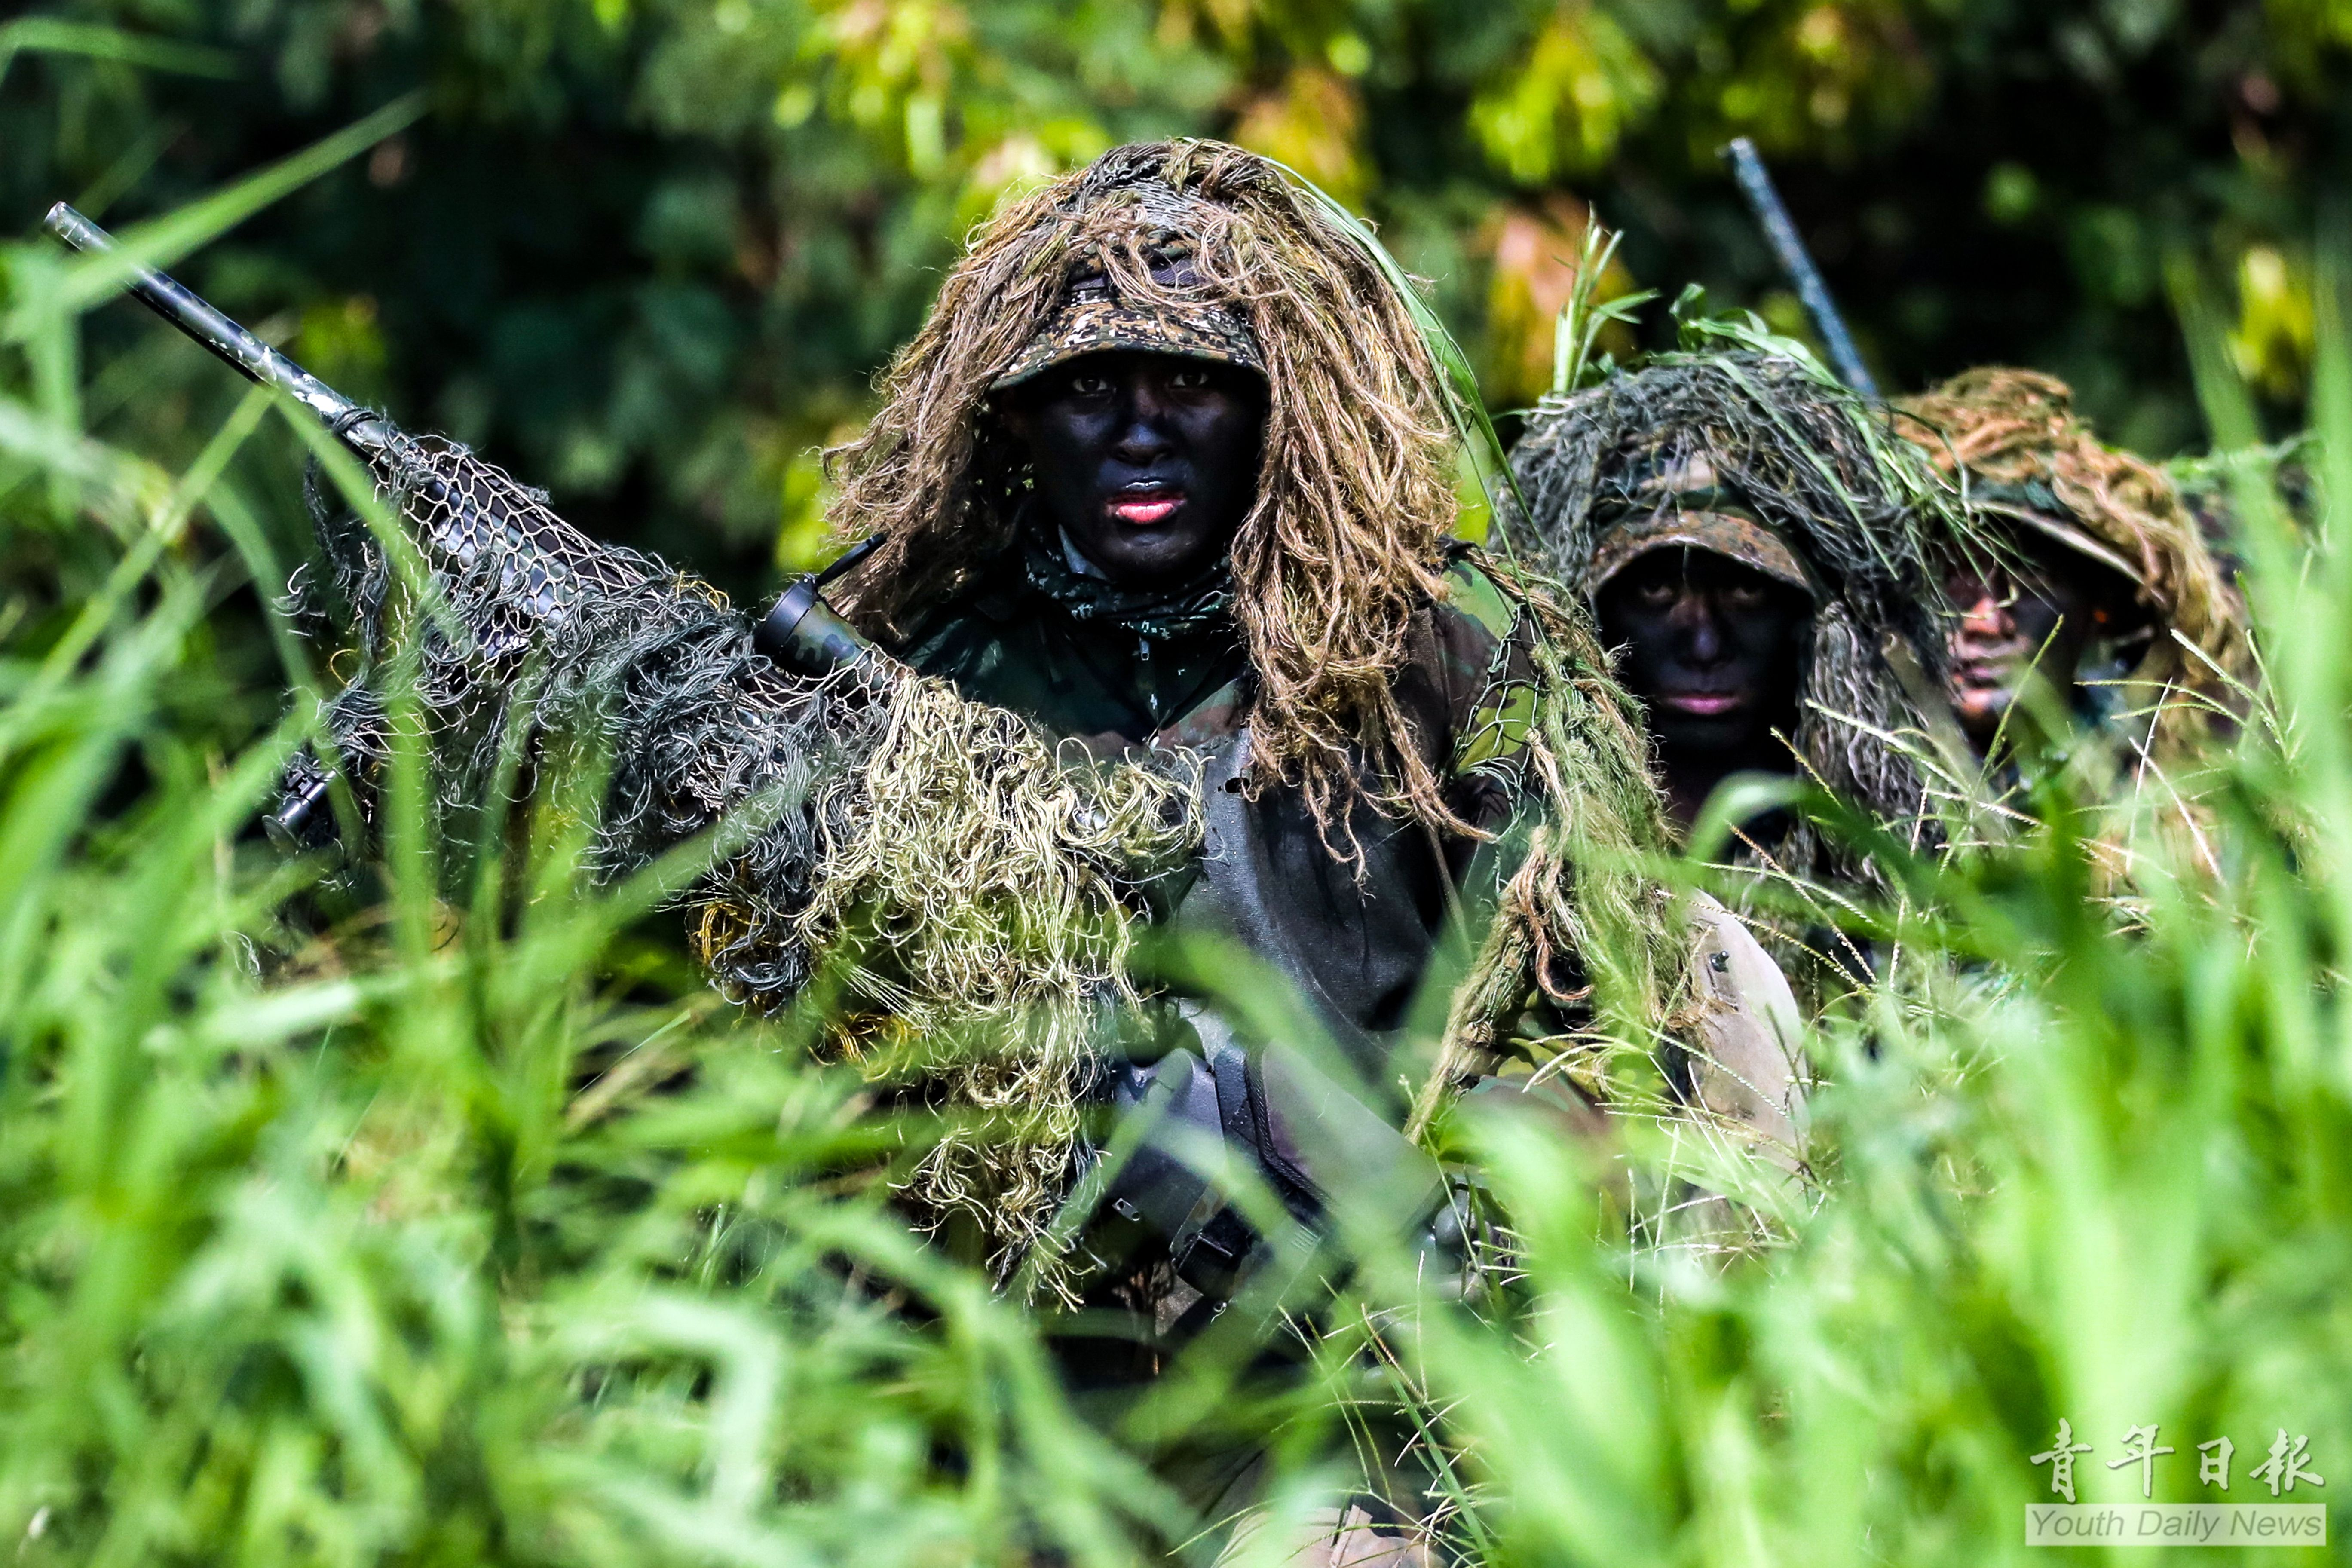 Sniper Tests with Infiltration Tactics Examines Soldiers' Insertion and Marksmanship